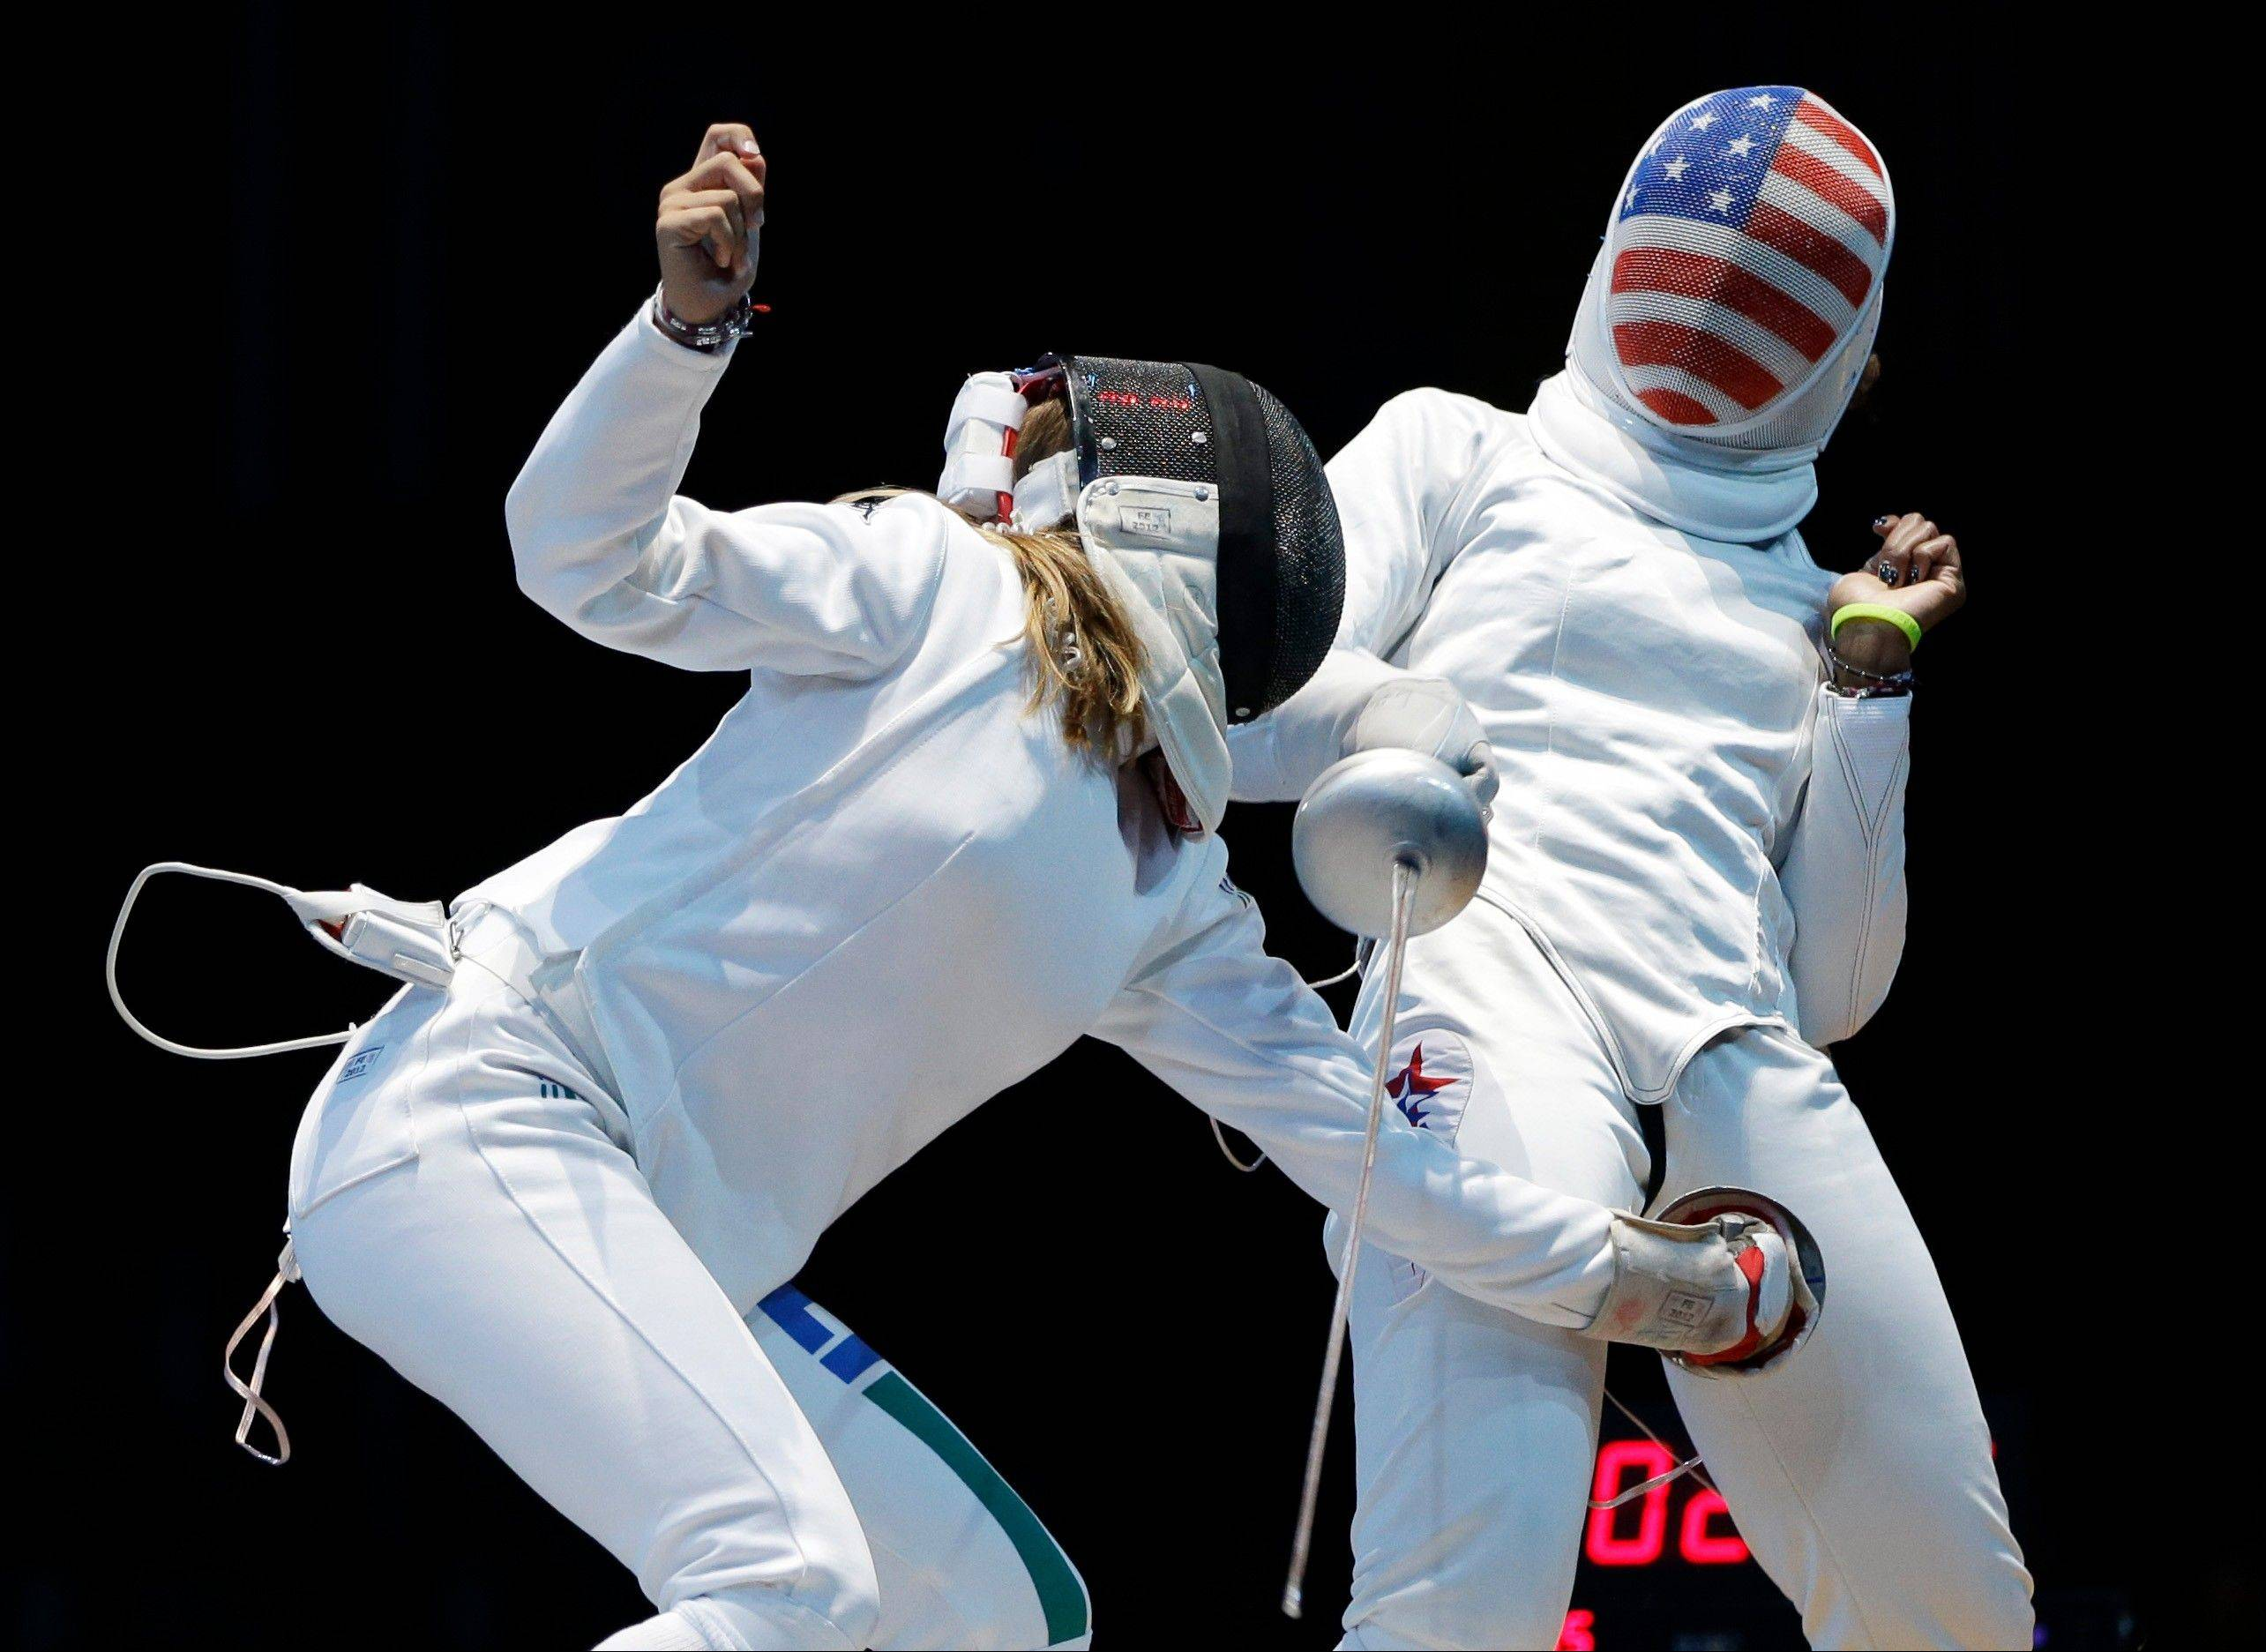 Italy's Rossella Fiamingo, left, competes against the United States' Maya Lawrence during a match in women's epee team fencing competition at the 2012 Summer Olympics, Saturday, Aug. 4, 2012, in London.